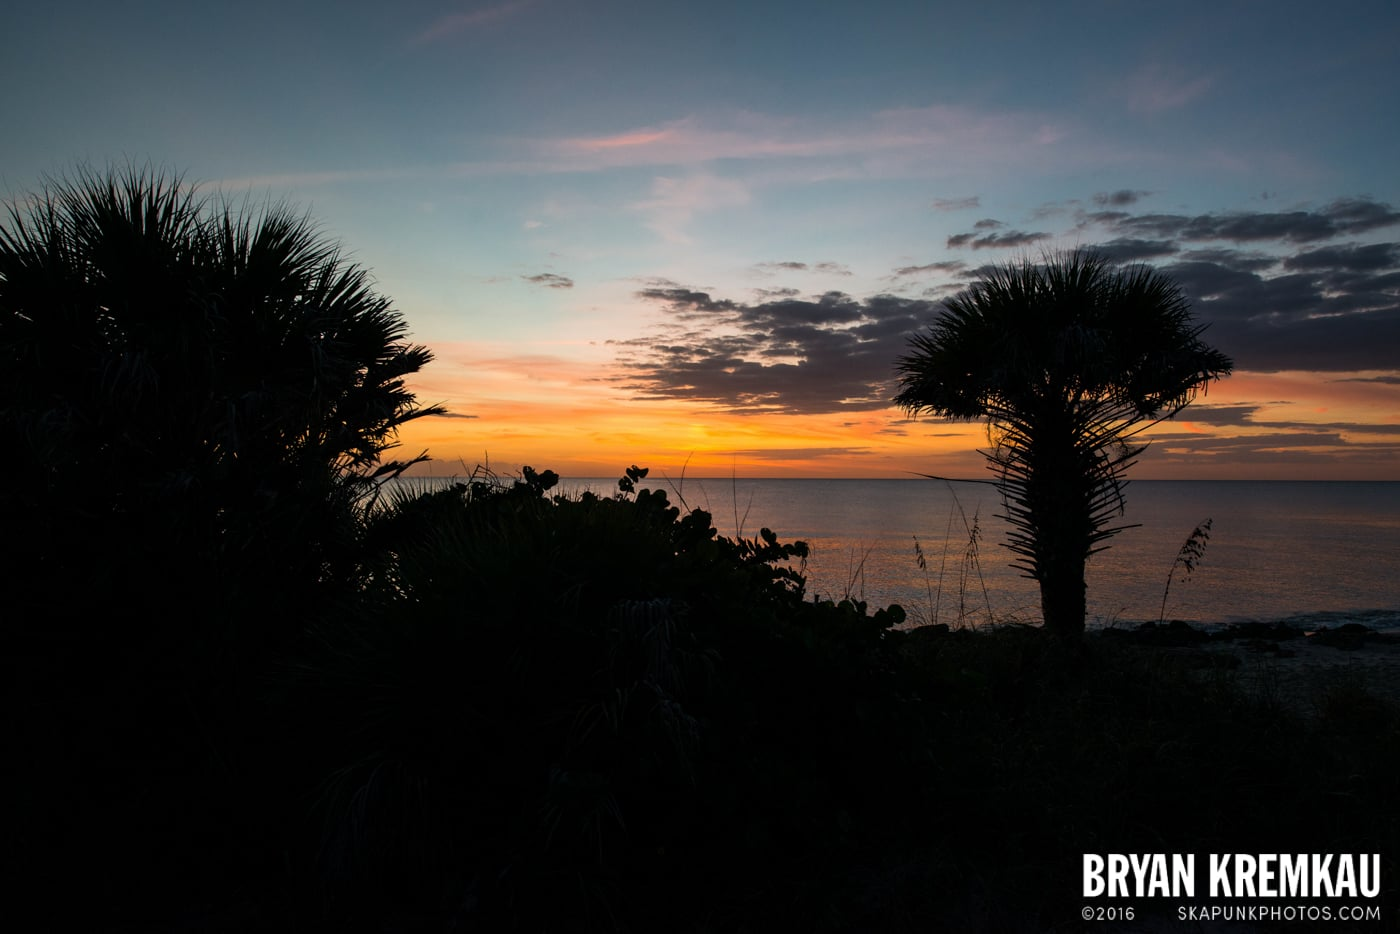 Sunsets, Astrophotography & Birds @ Venice, Florida - 10.25.14 - 11.5.14 (60)